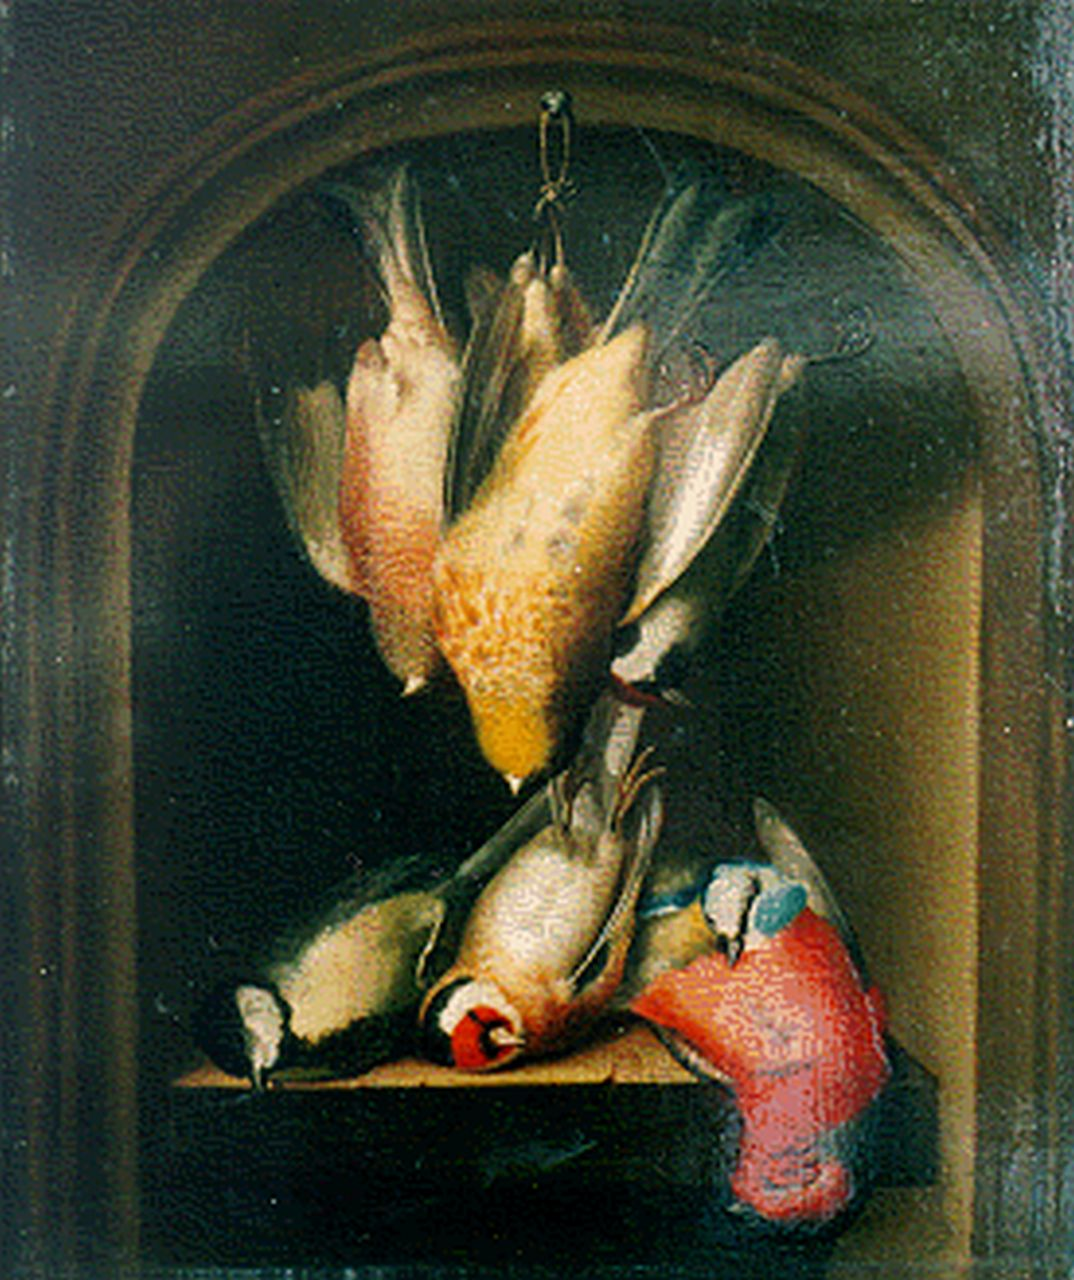 Elise Sturmer | Still life with dead birds in a niche, oil on panel, 31.8 x 27.1 cm, signed l.l. and dated 1828